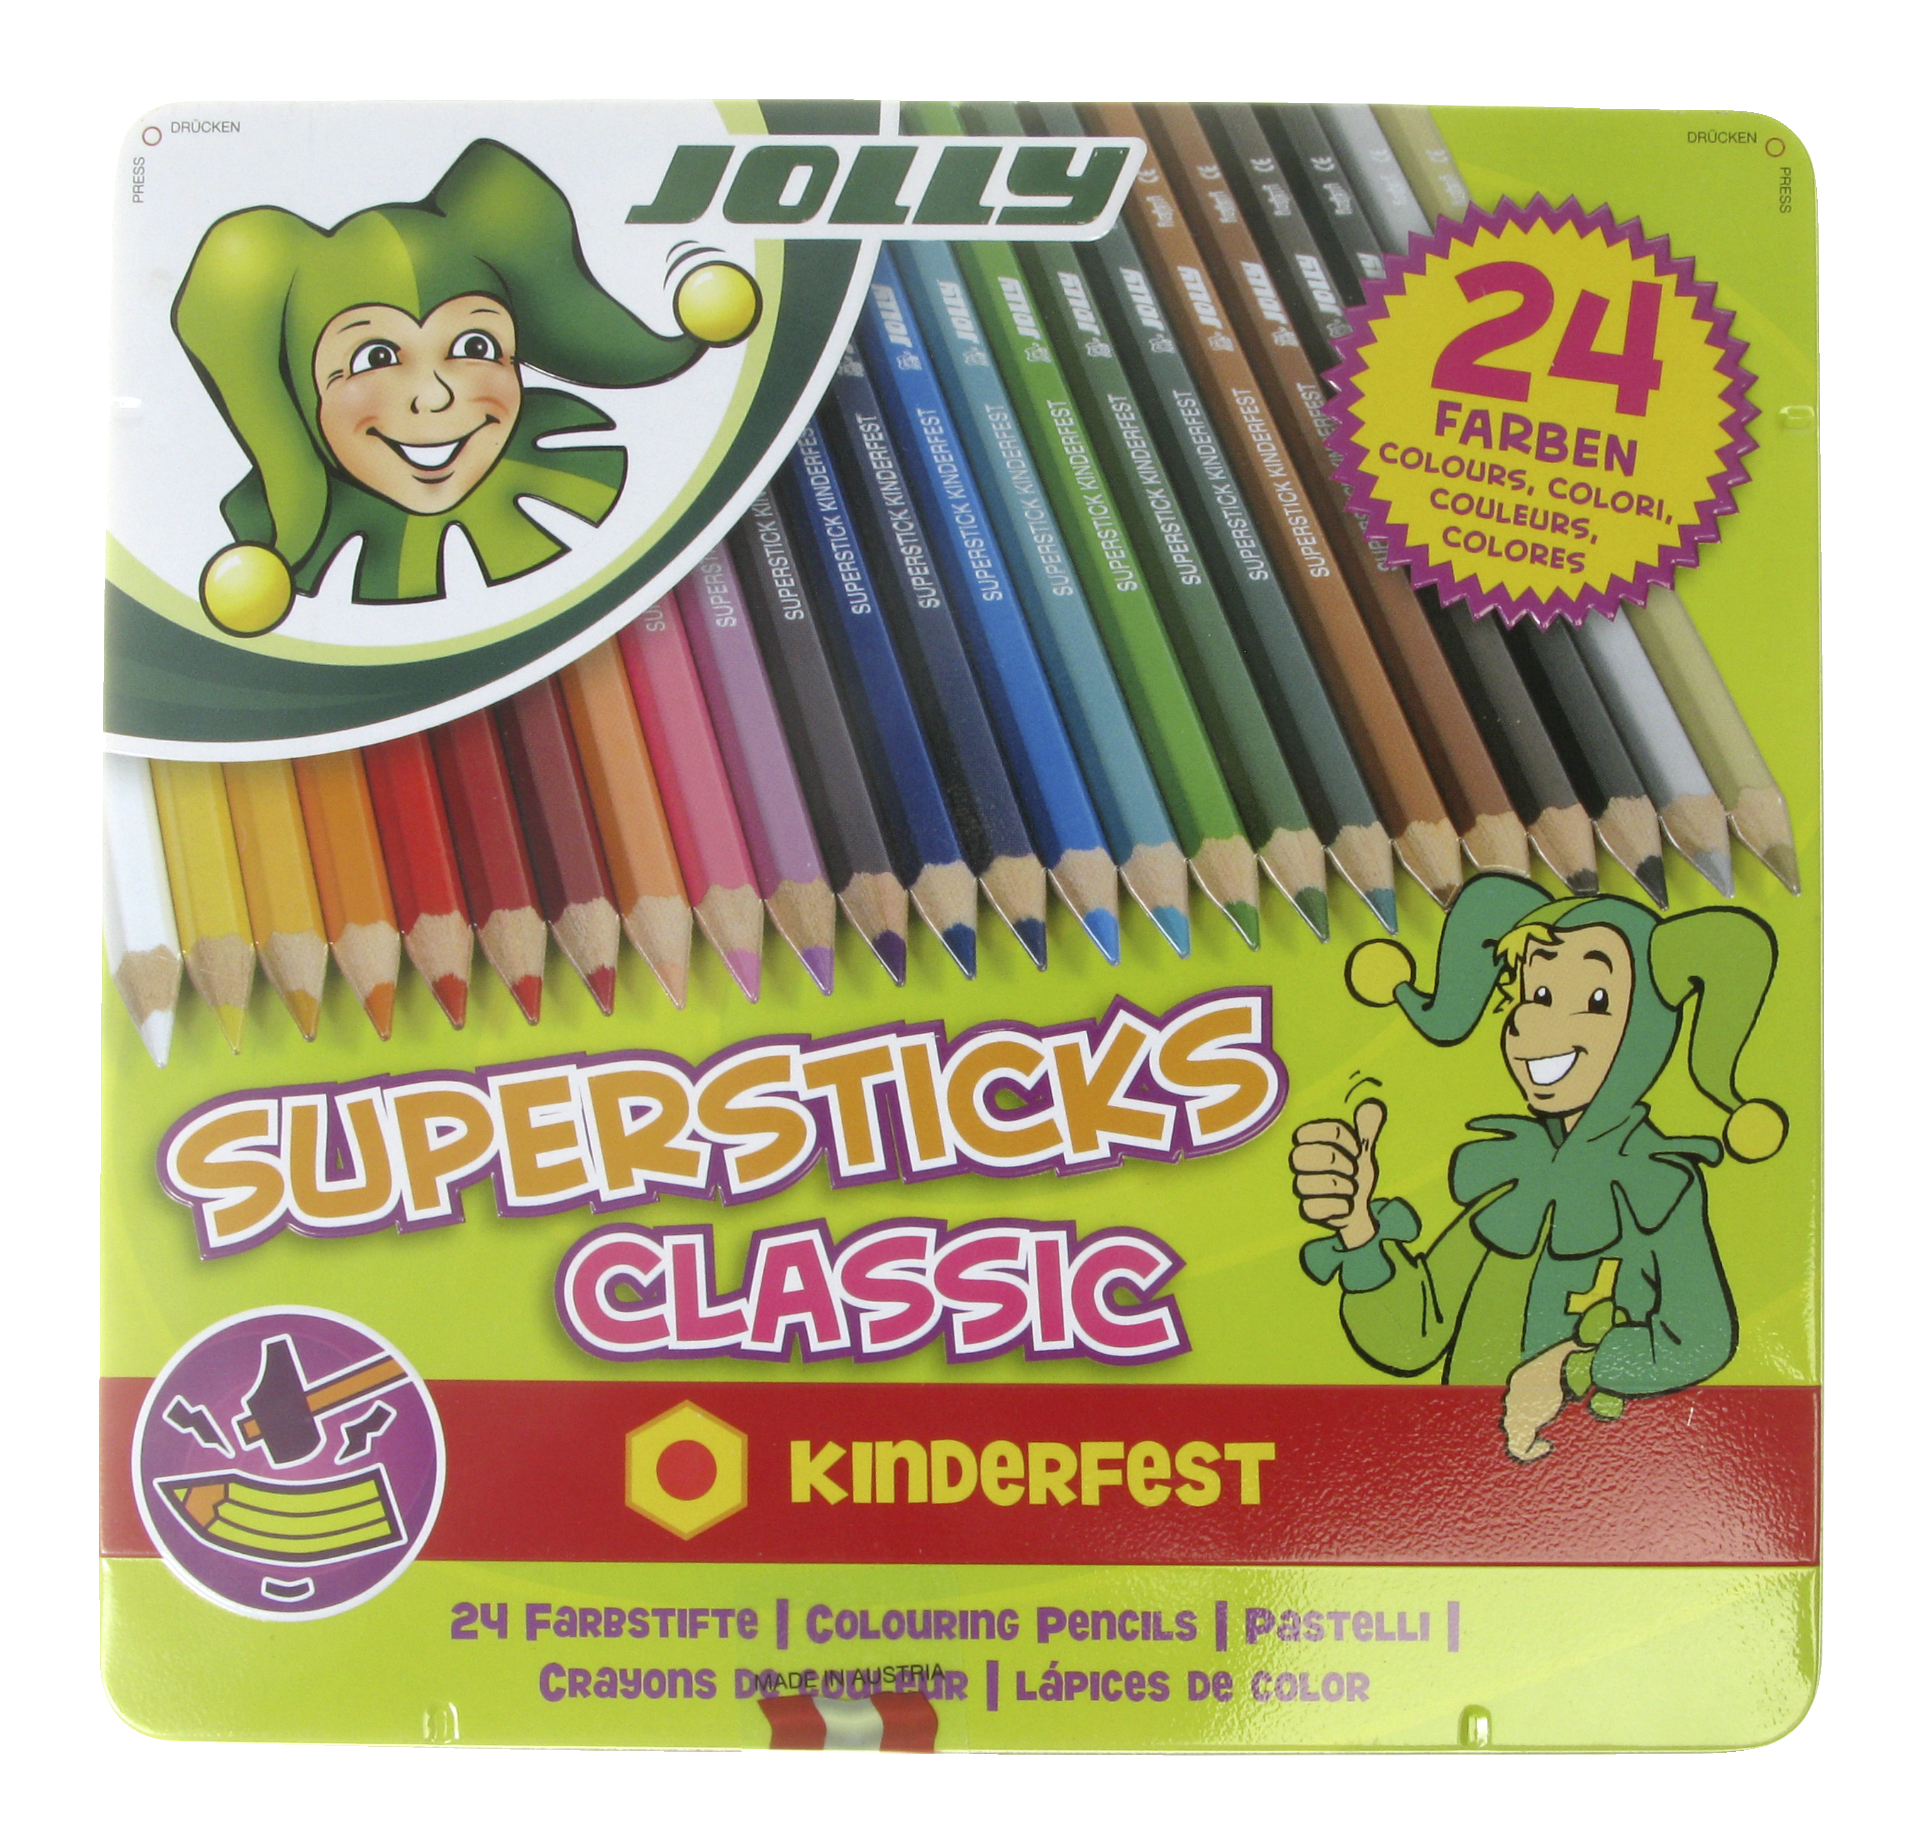 Jolly Supersticks Colored Pencils with Tin, Assorted Colors, Set of 24